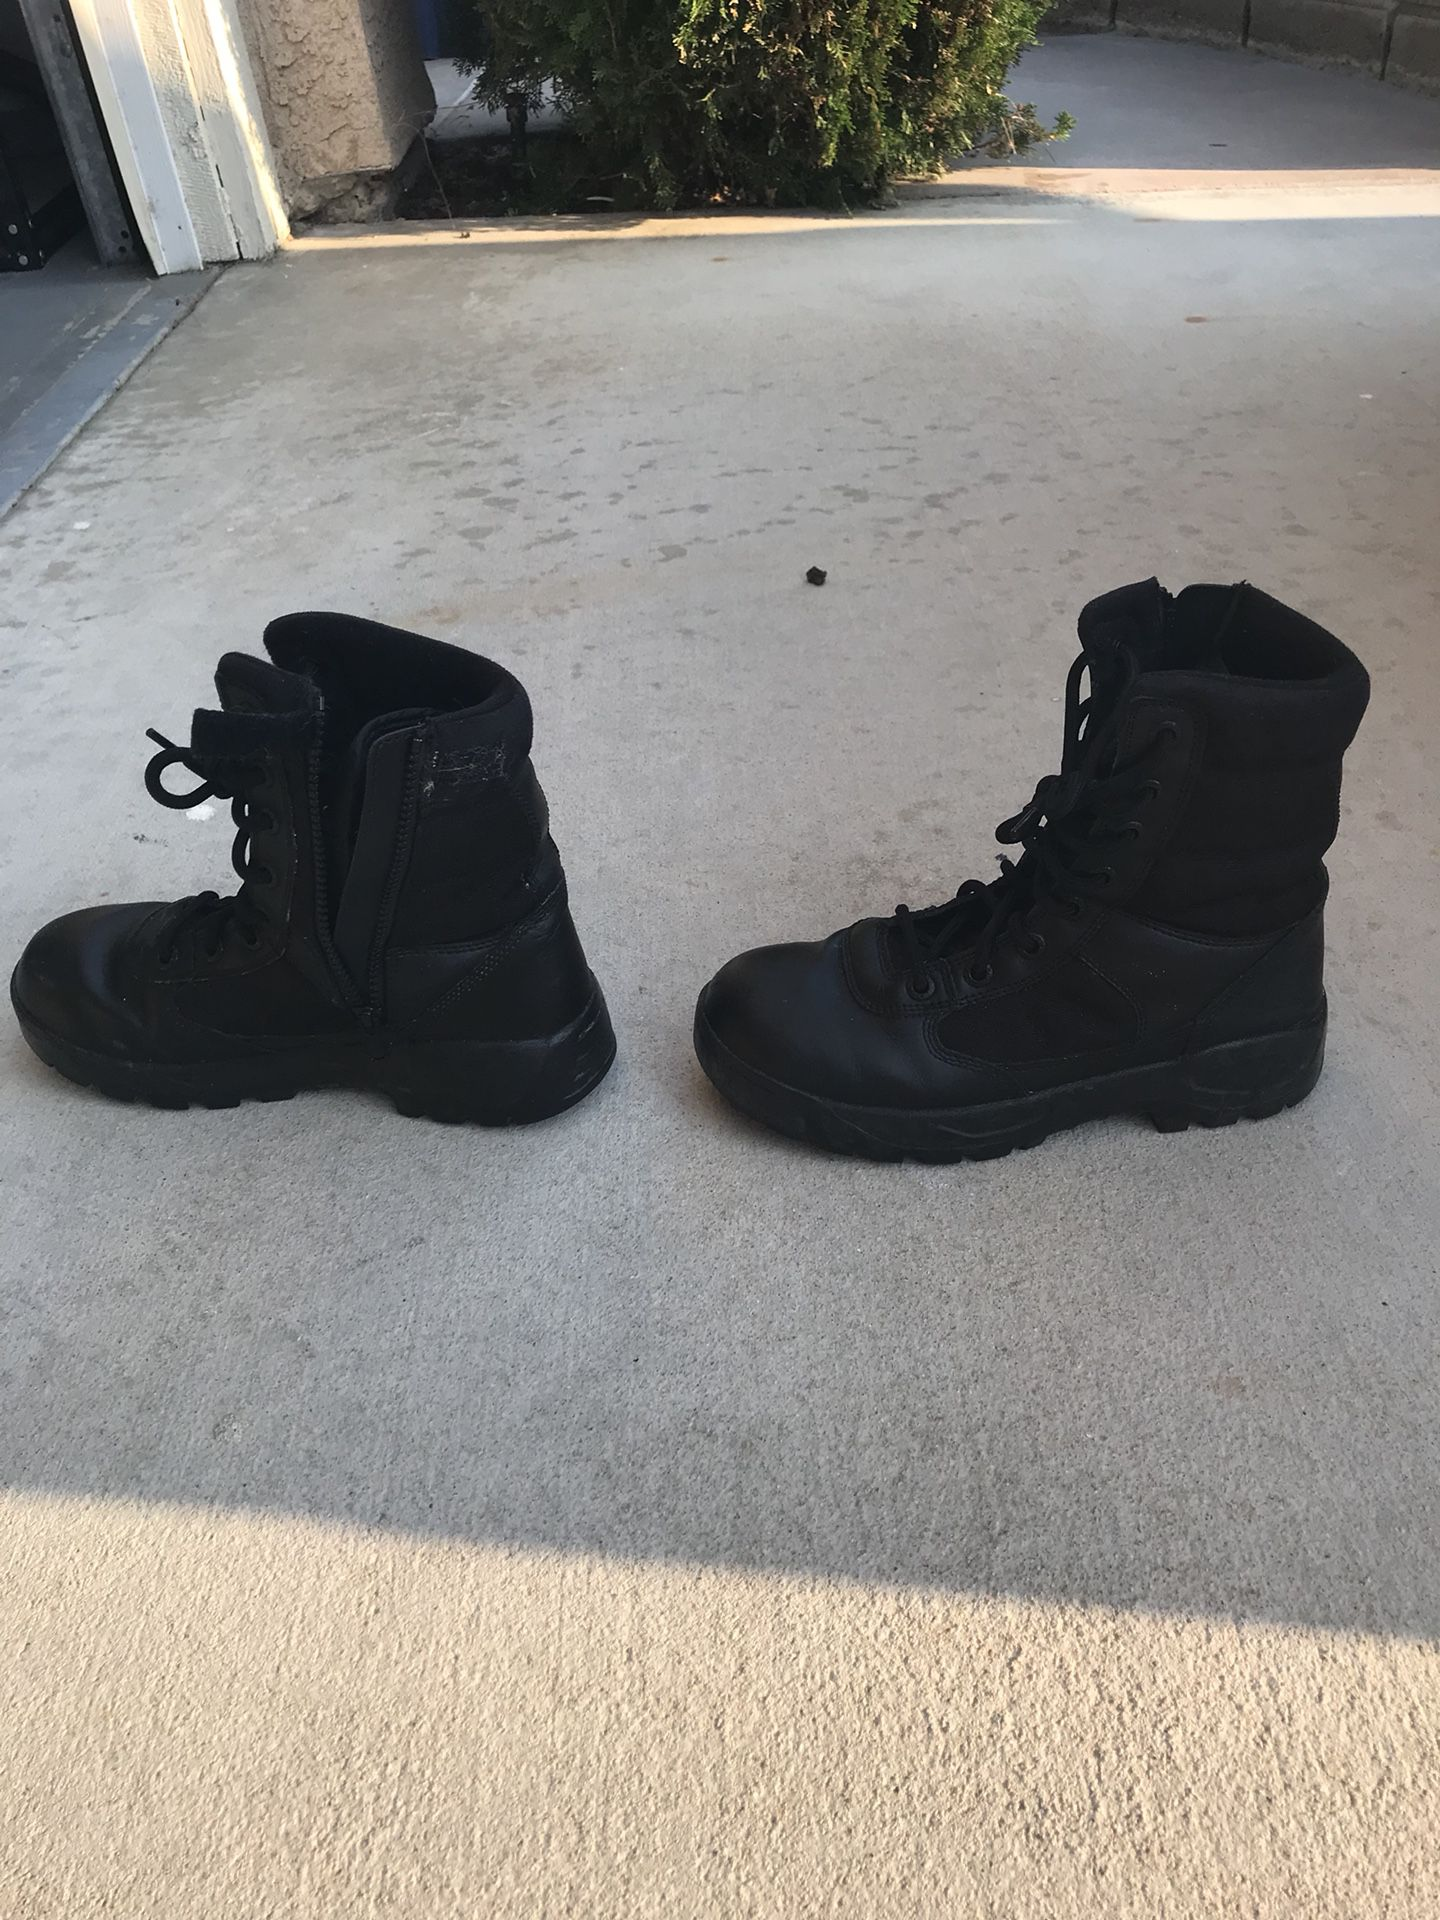 Tactical Boots size 8.5 mens/ 10.5 womens